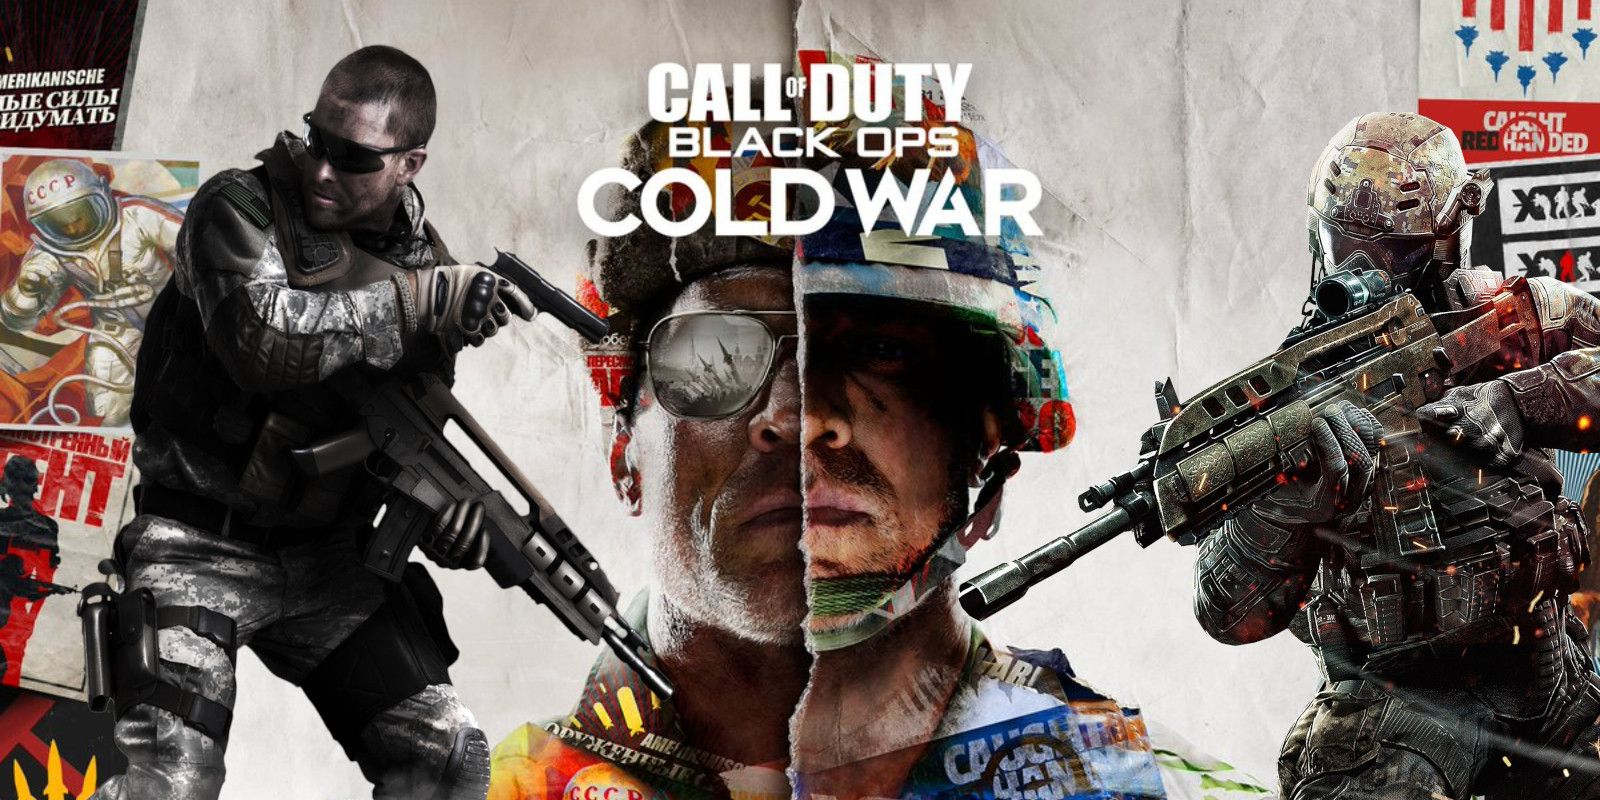 Call of Duty: Black Ops - Cold War - How to Decrypt a Floppy Disk